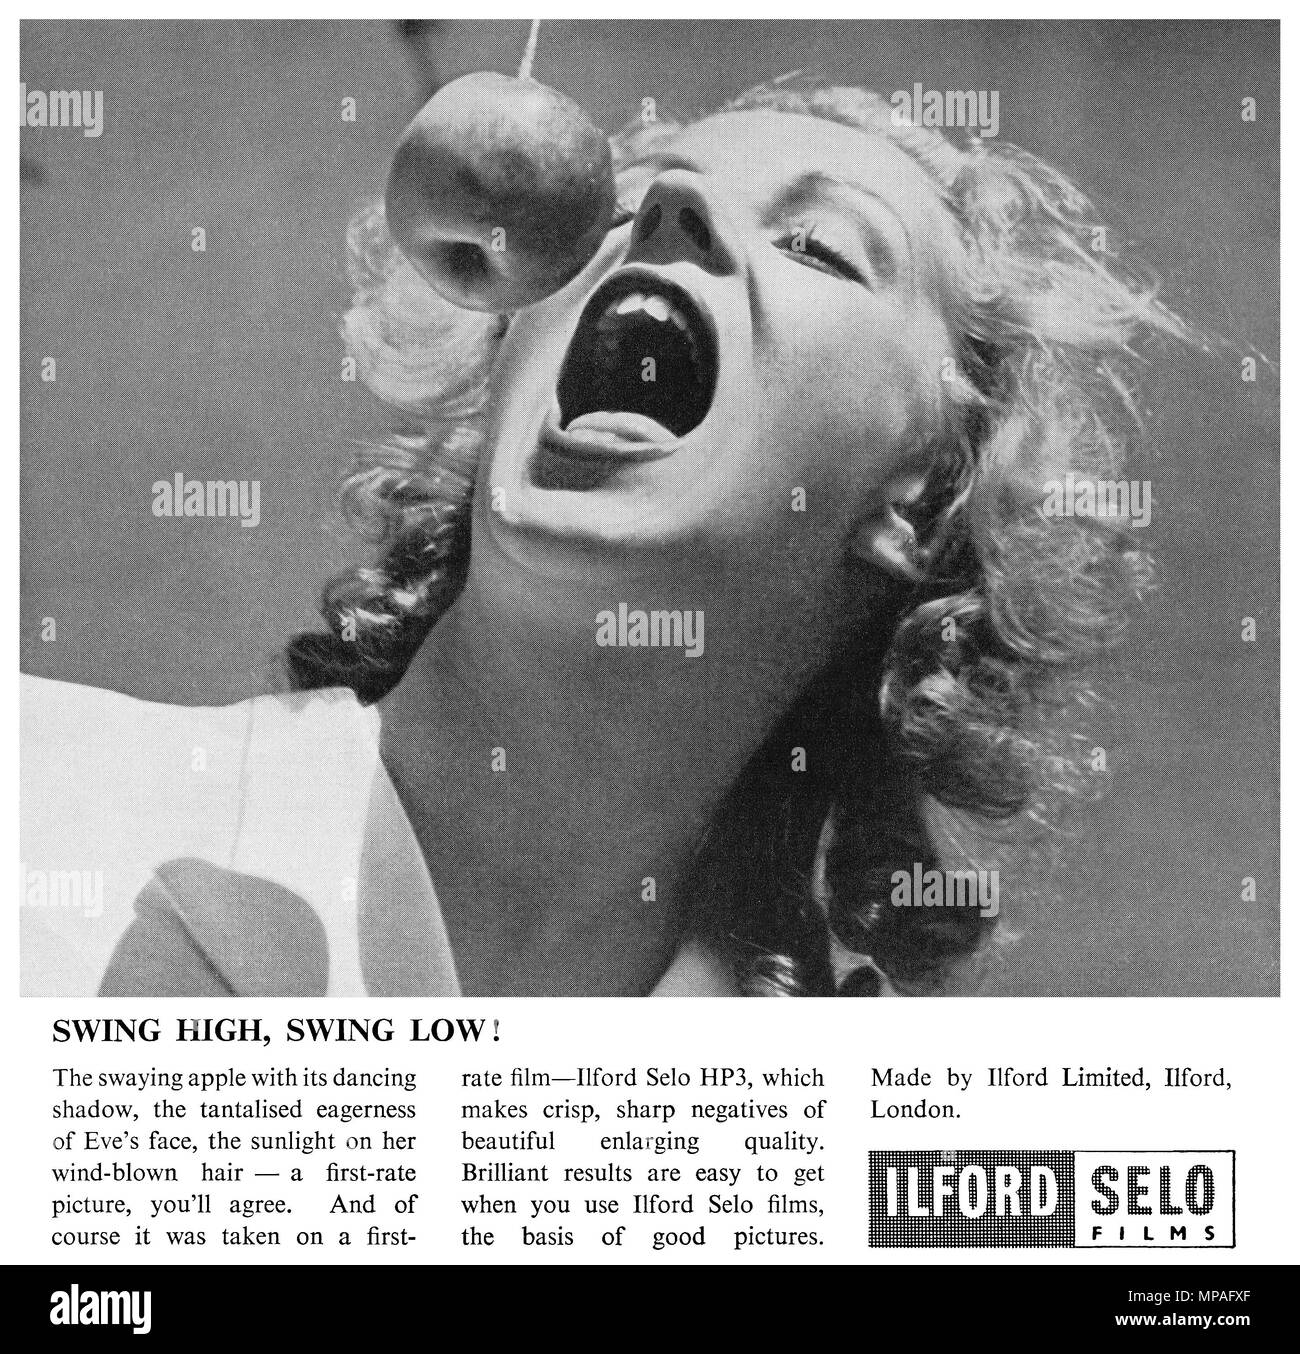 1946 British advertisement for Ilford Selo films. - Stock Image